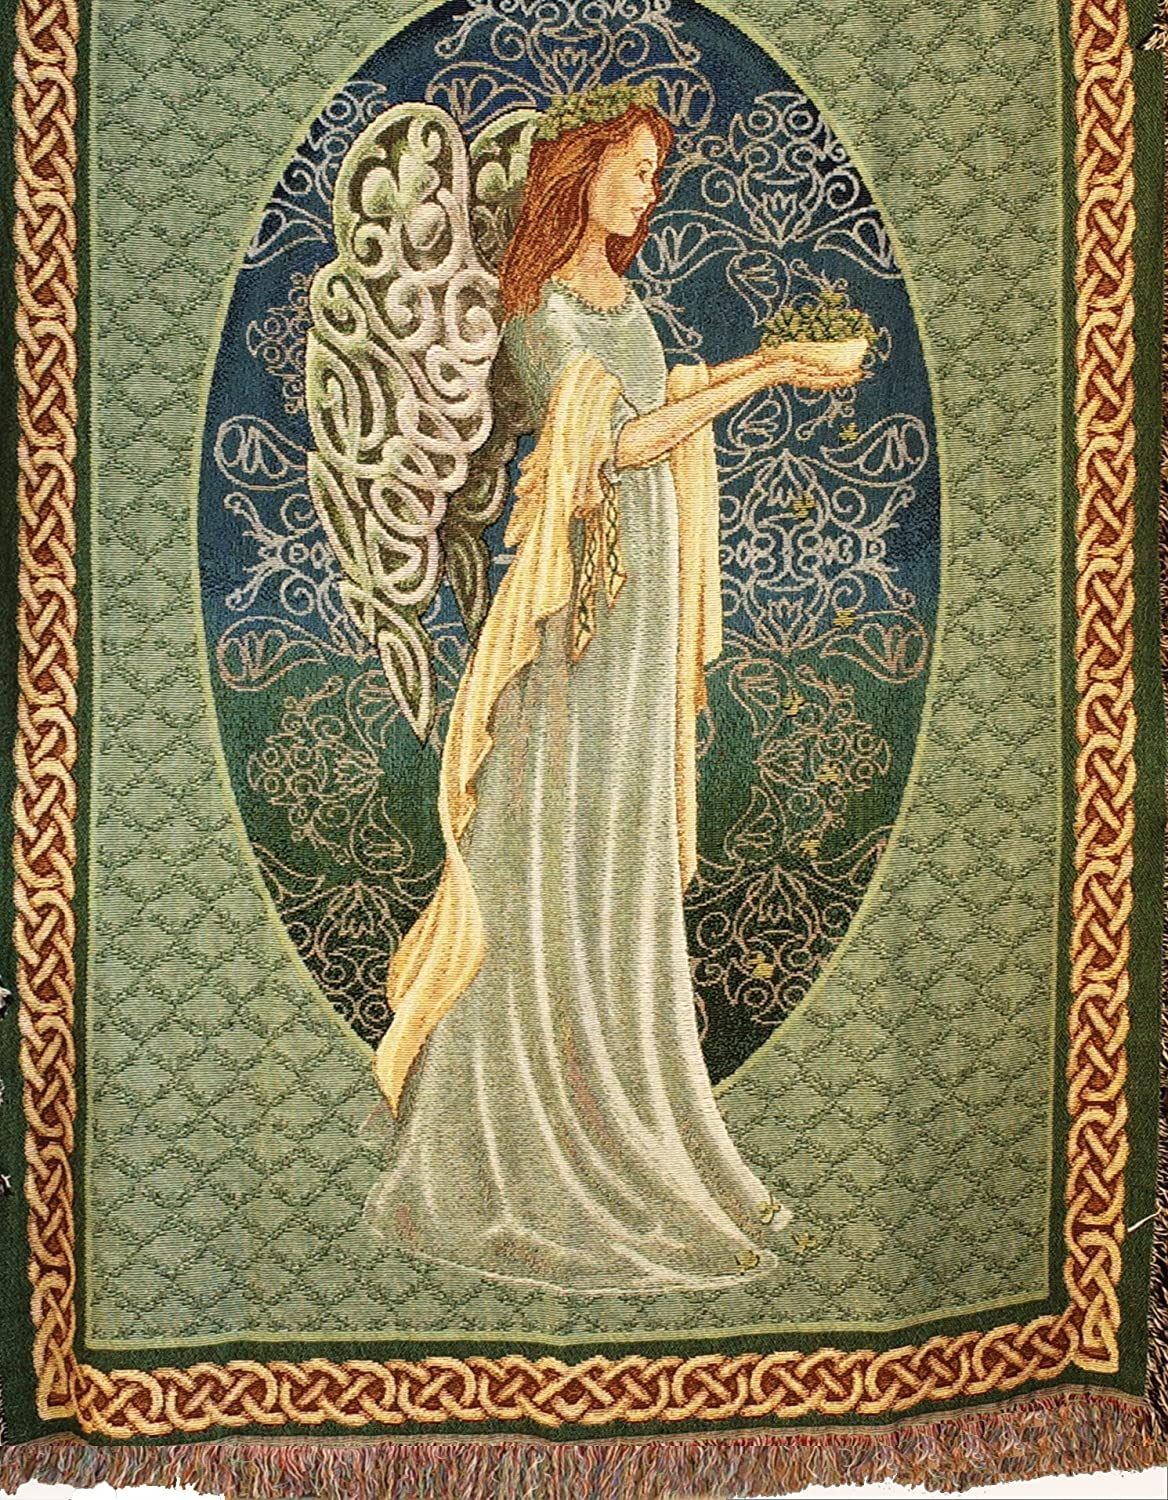 Manual Inspirational Collection 50 x 60-Inch Tapestry Throw, Irish Angel